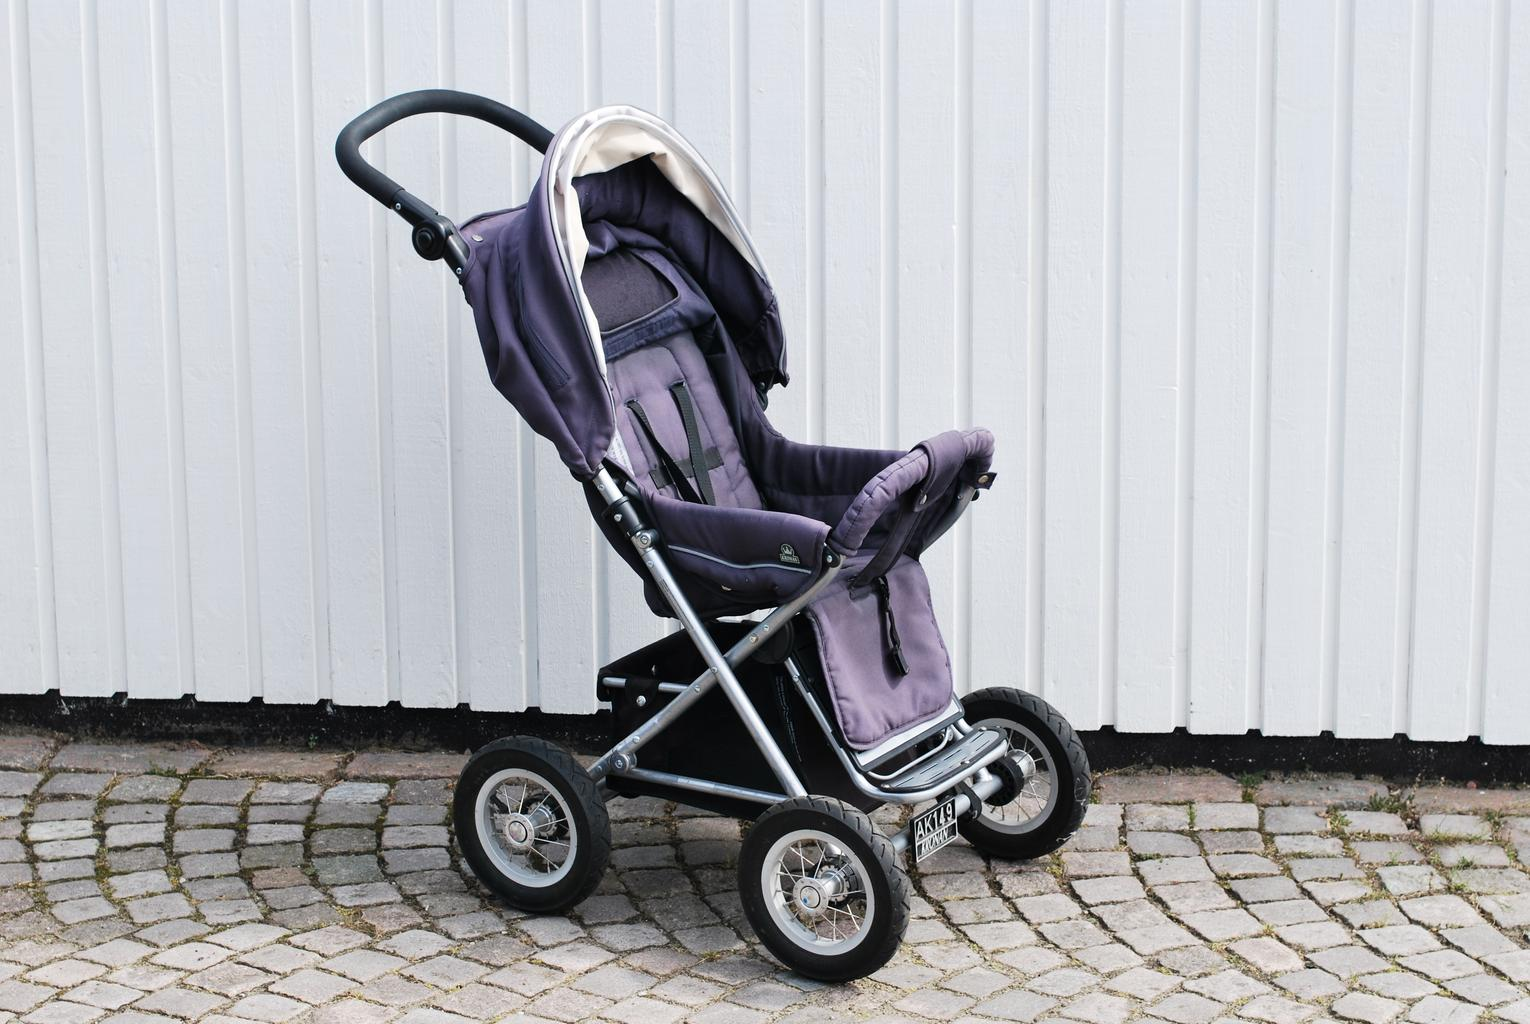 A stock image of a pram